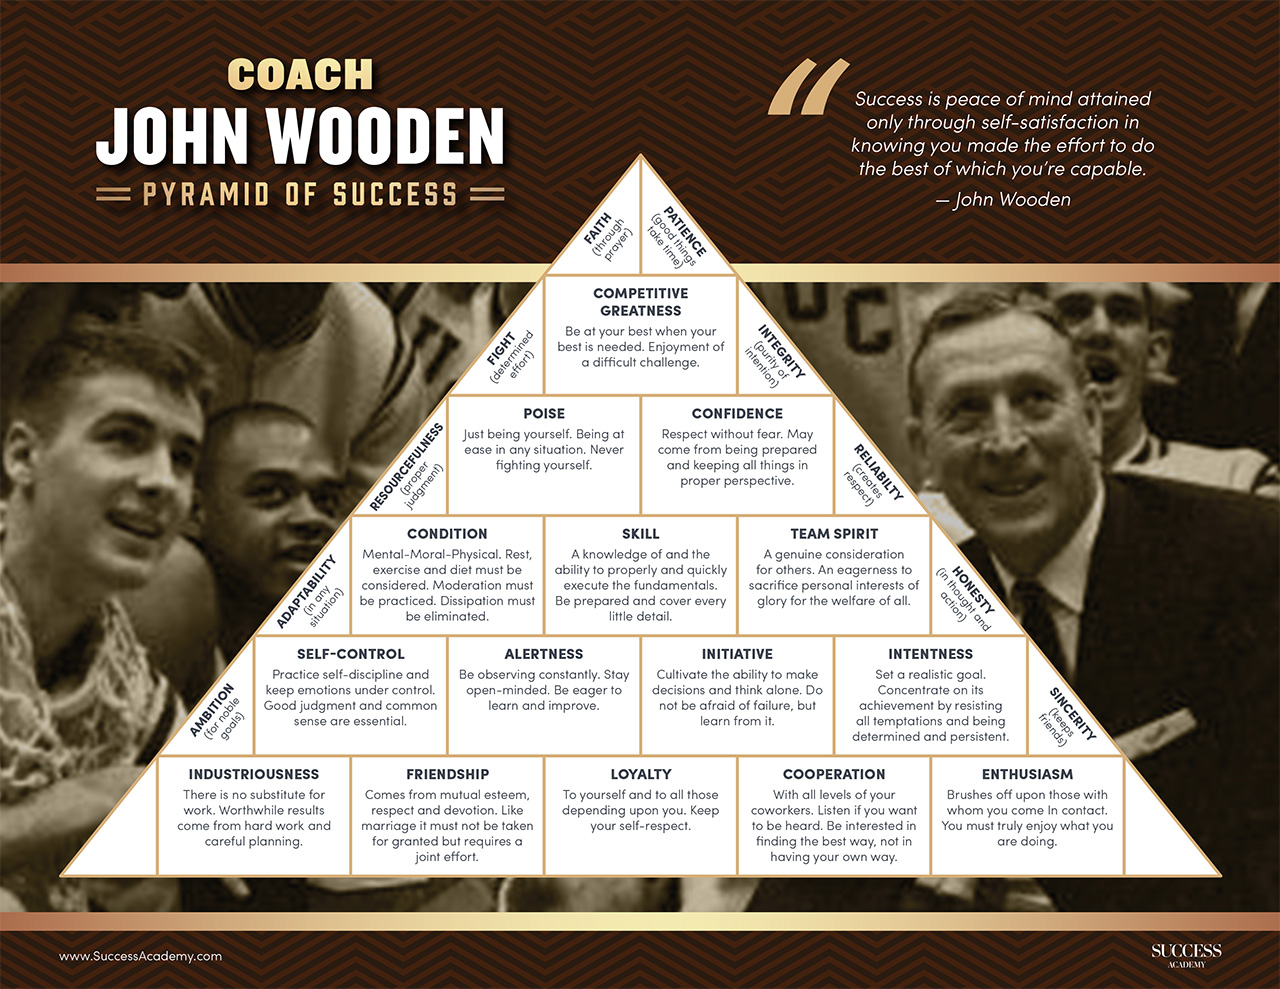 Pyramid Of Success Coach John Wooden